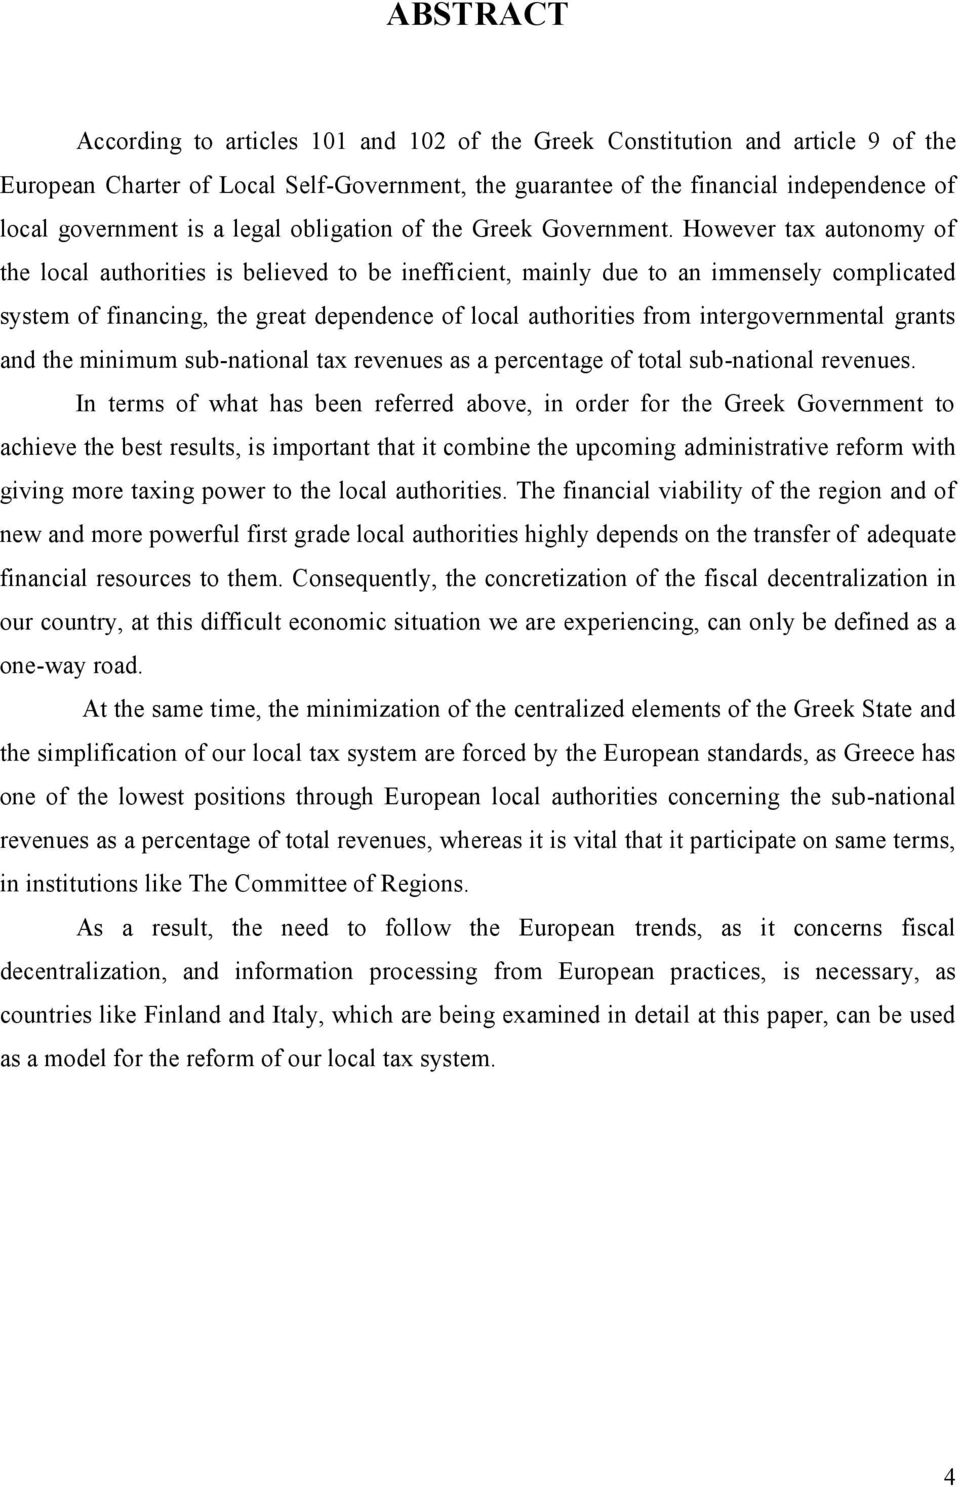 However tax autonomy of the local authorities is believed to be inefficient, mainly due to an immensely complicated system of financing, the great dependence of local authorities from